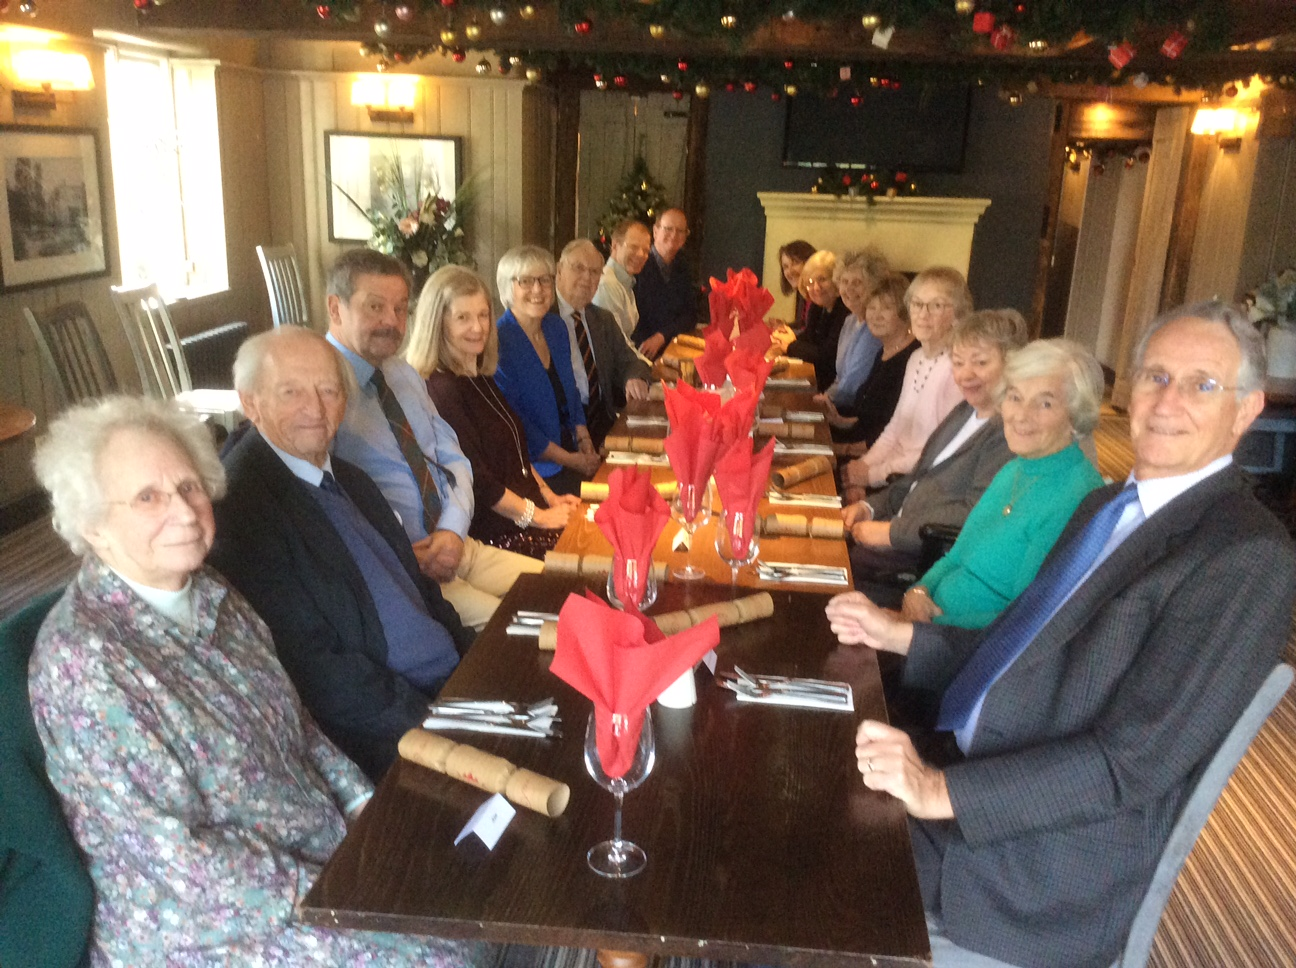 St Andrews URC Family Christmas meal